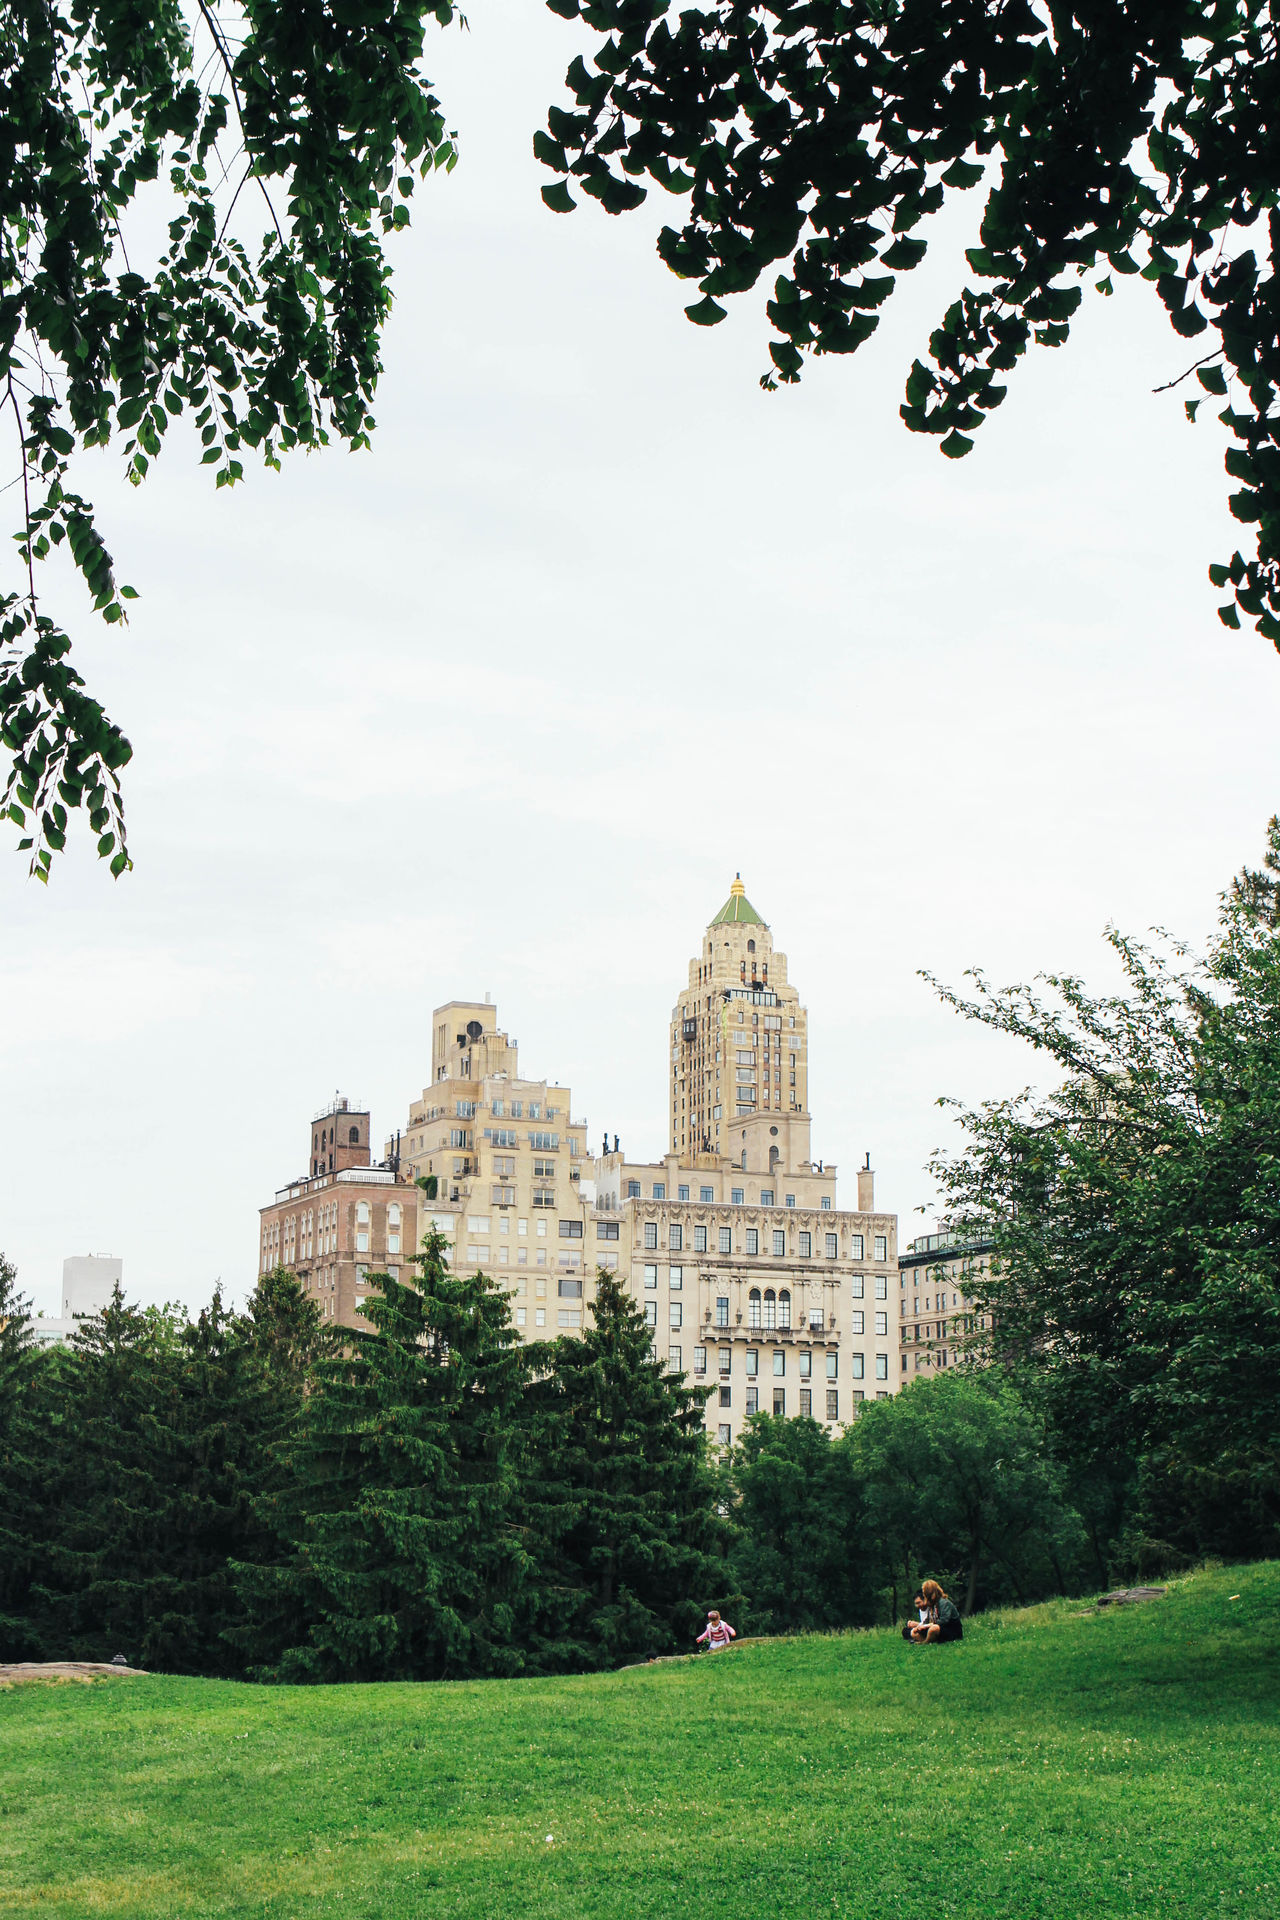 Architecture Building Exterior Built Structure Central Park Day Nature Outdoors Sky Tree